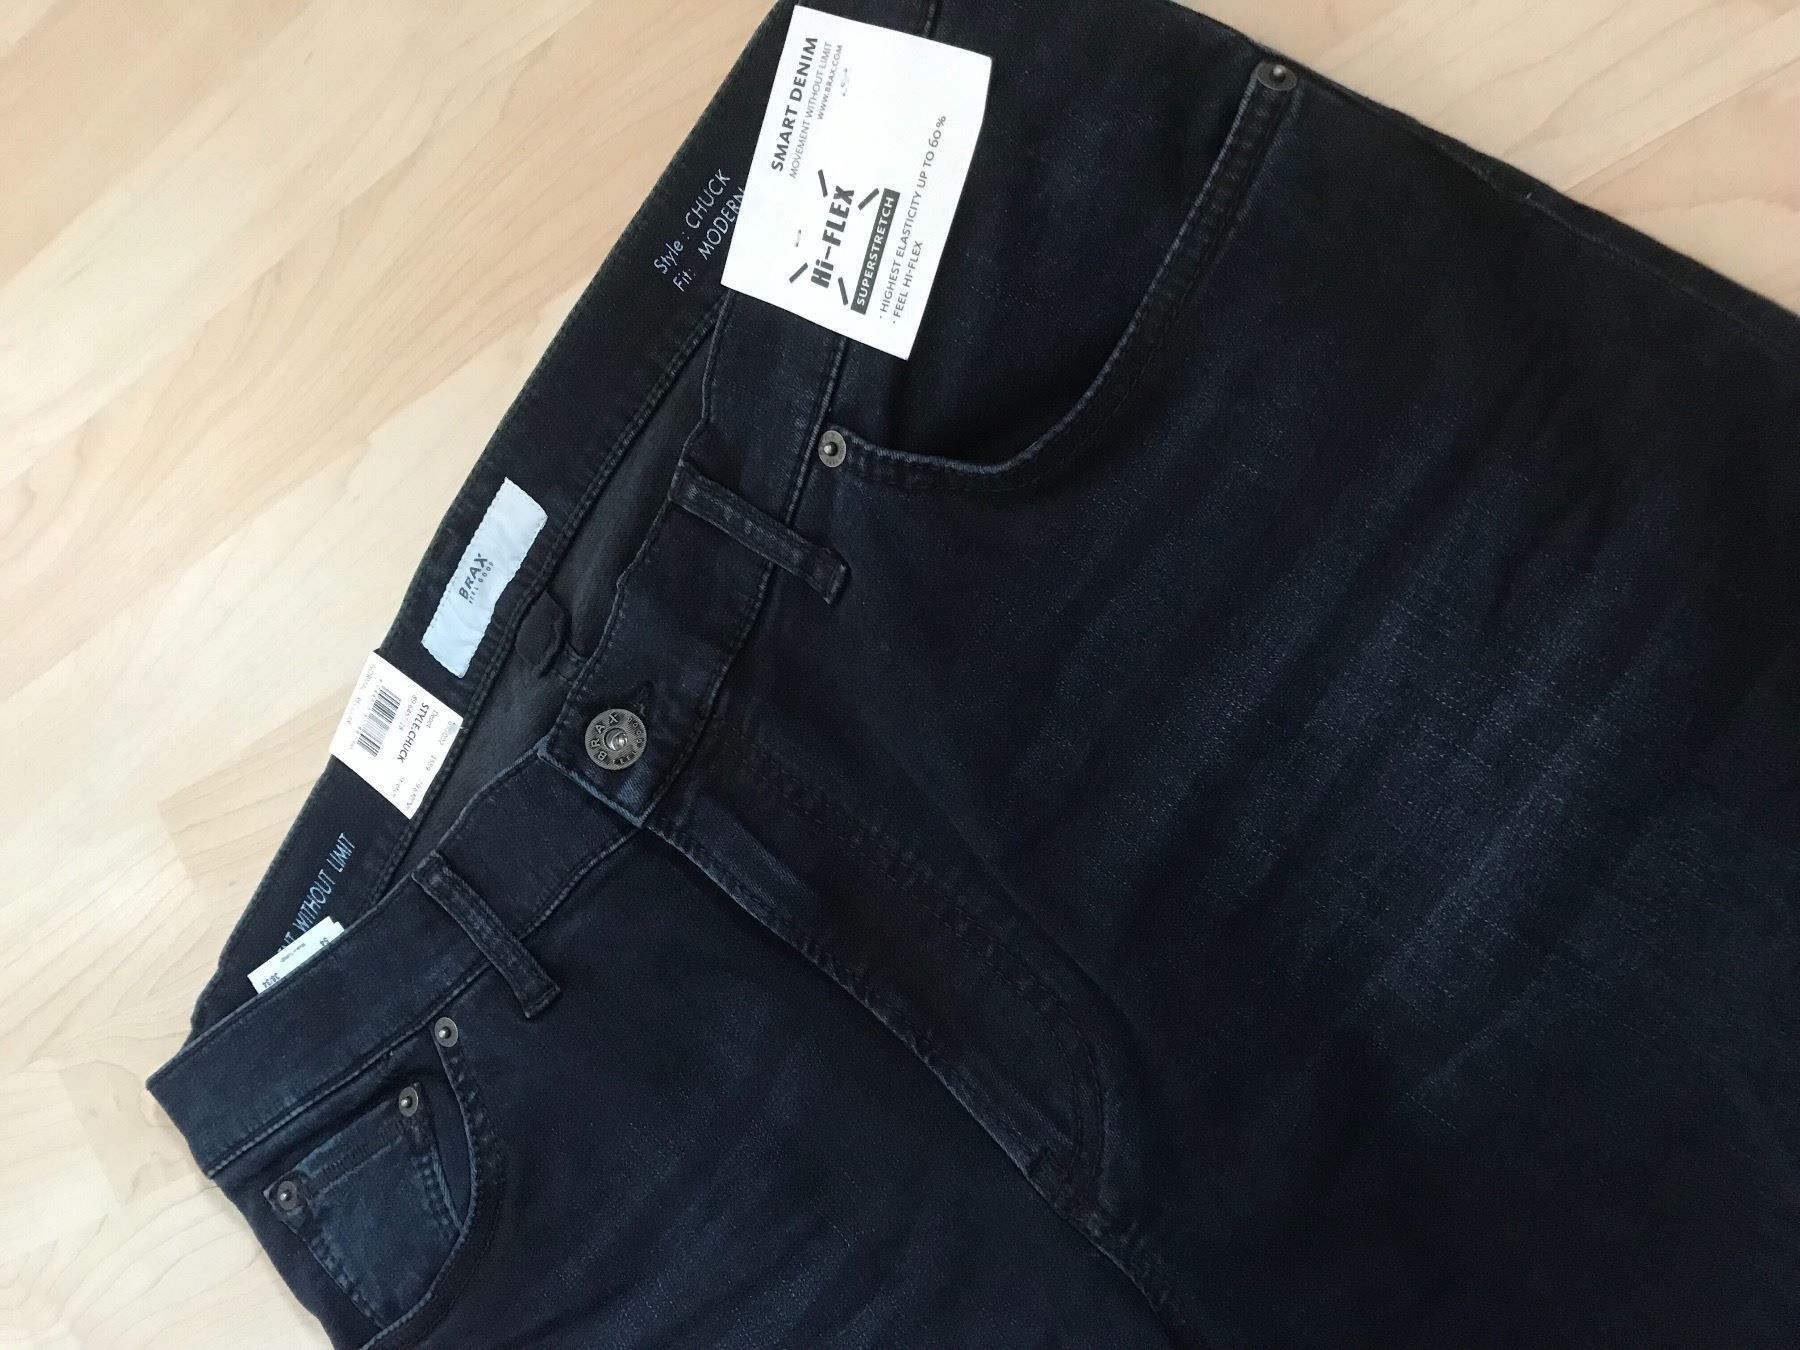 good selling discount shop hot products Herren Hose Brax Feel Good 38/34 Chuck kaufen auf ricardo.ch